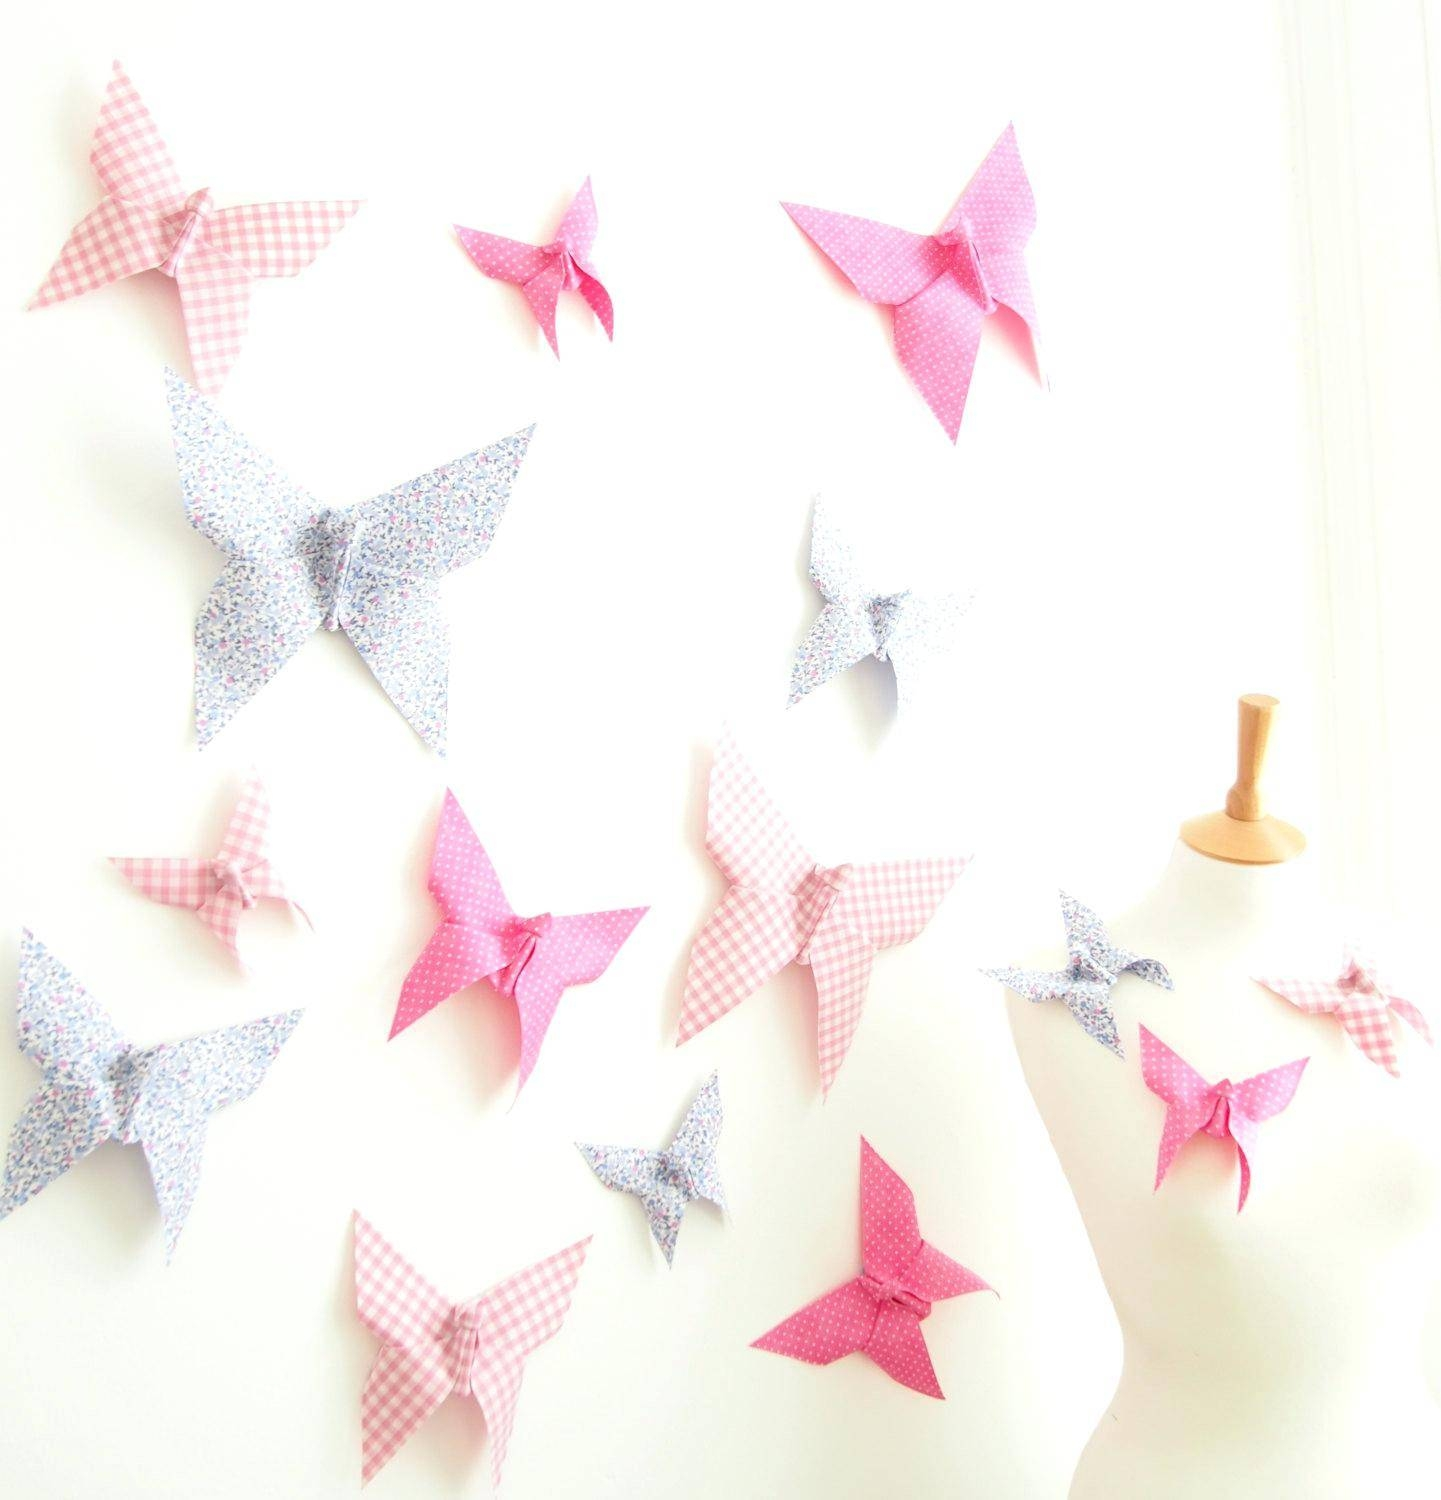 Wall Decor : 58 Zoom Mesmerizing Zoom Wall Decor Templates Intended For Latest Diy 3D Butterfly Wall Art (View 18 of 20)